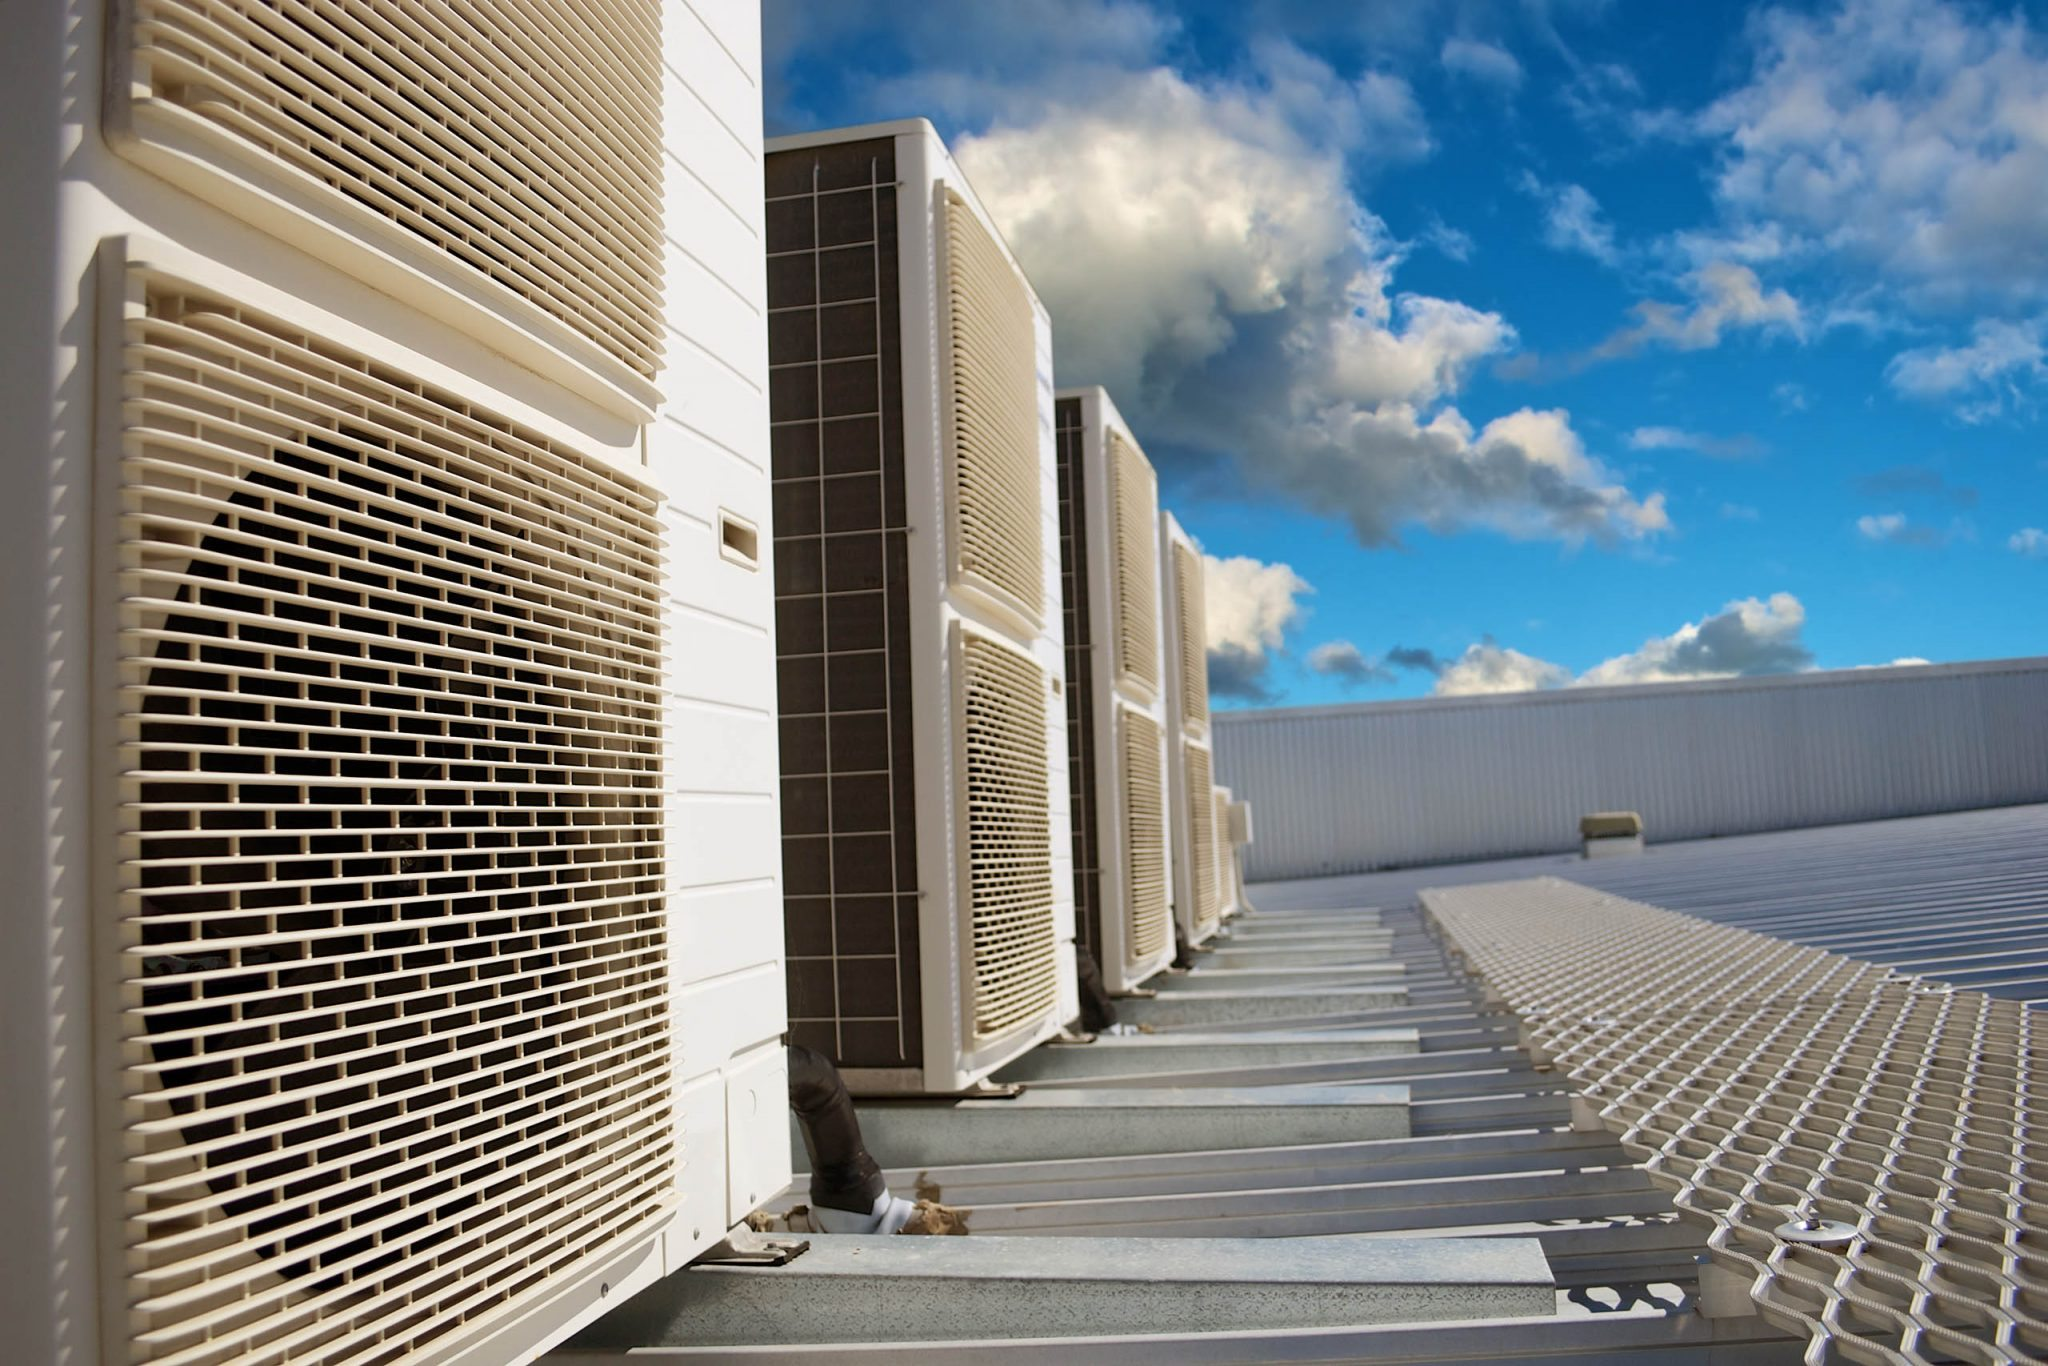 HVAC Contractors Staying Cool with the Help of R&D Tax Credits